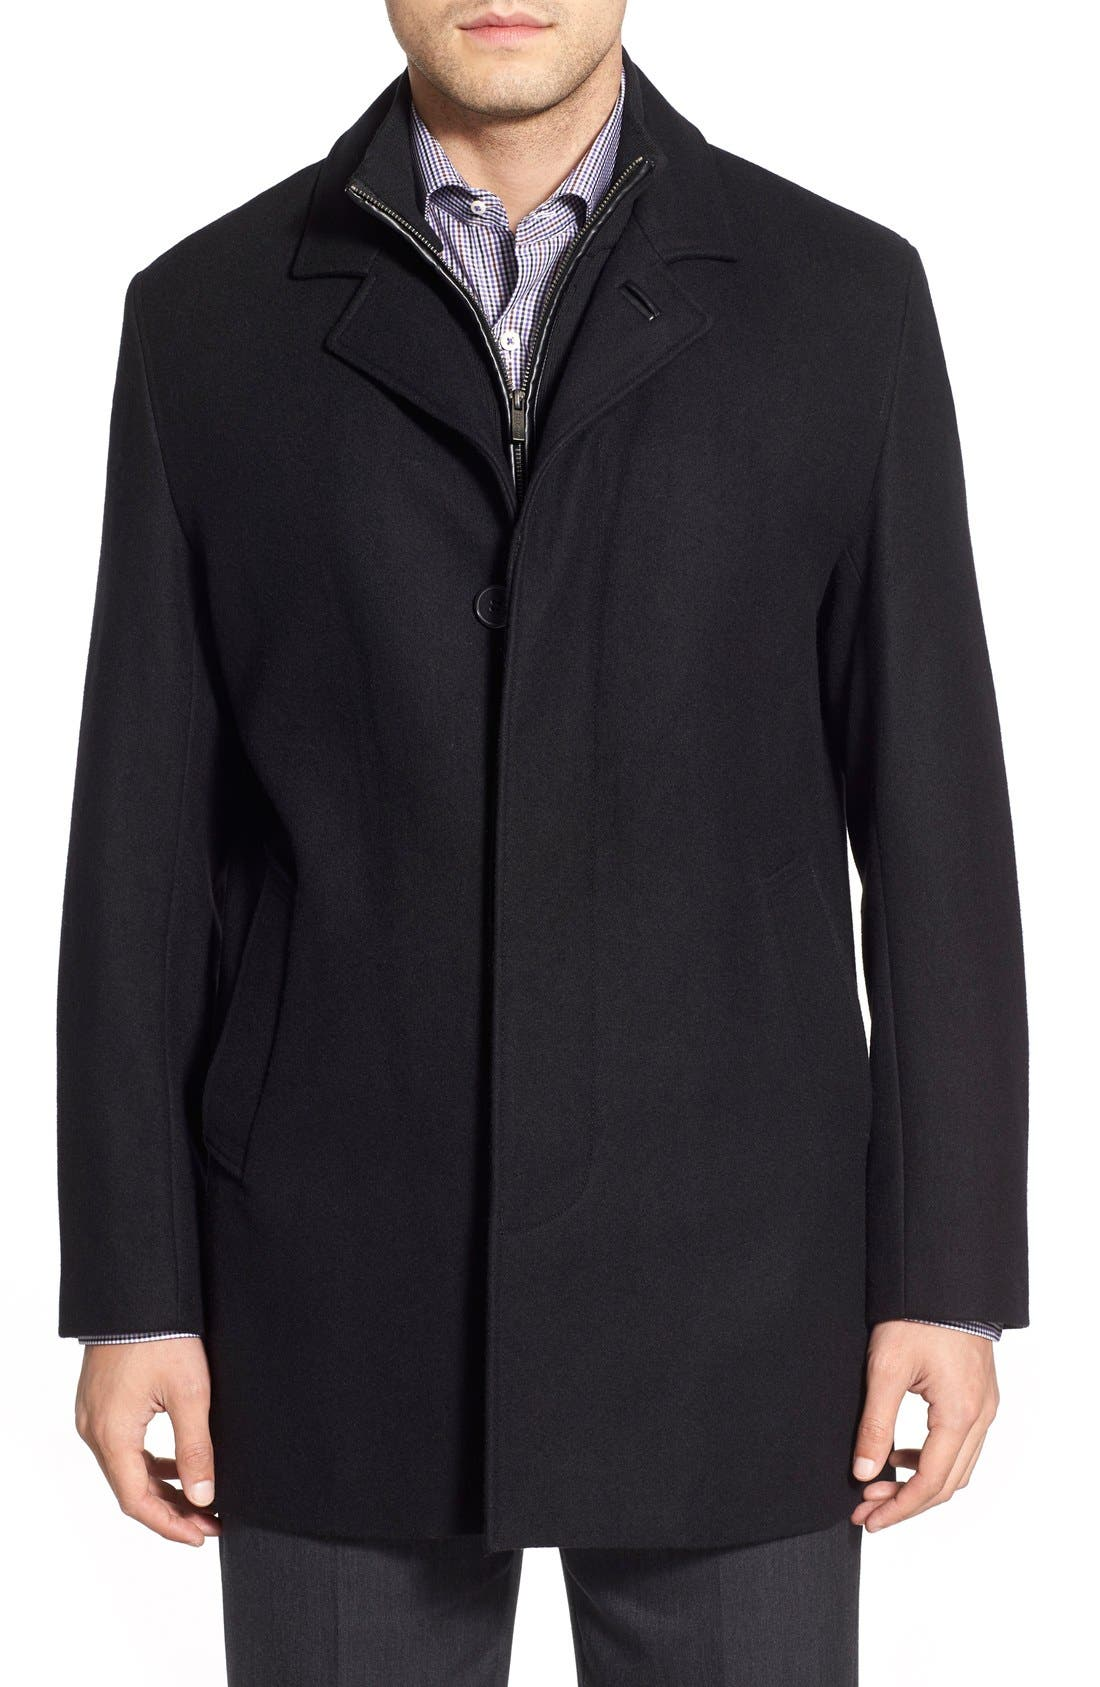 Main Image - Cole Haan Wool Blend Topcoat with Inset Knit Bib